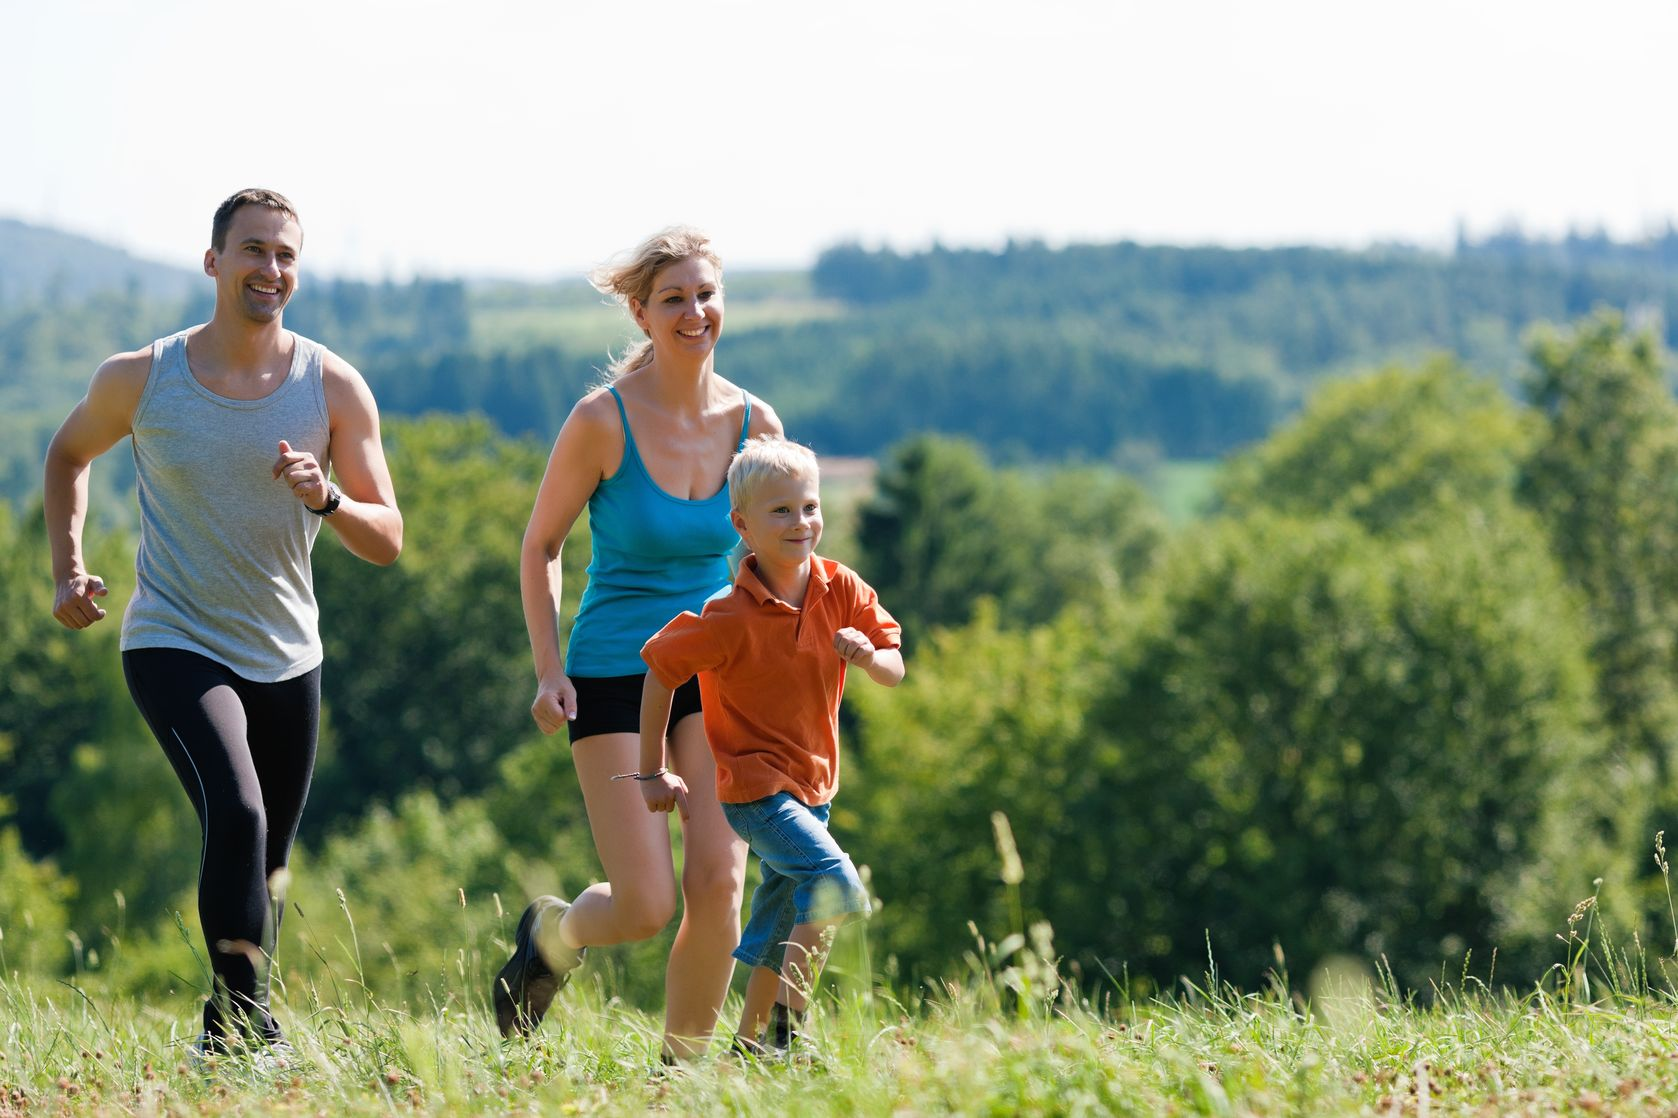 Exercising in the family strengthens the emotional bond